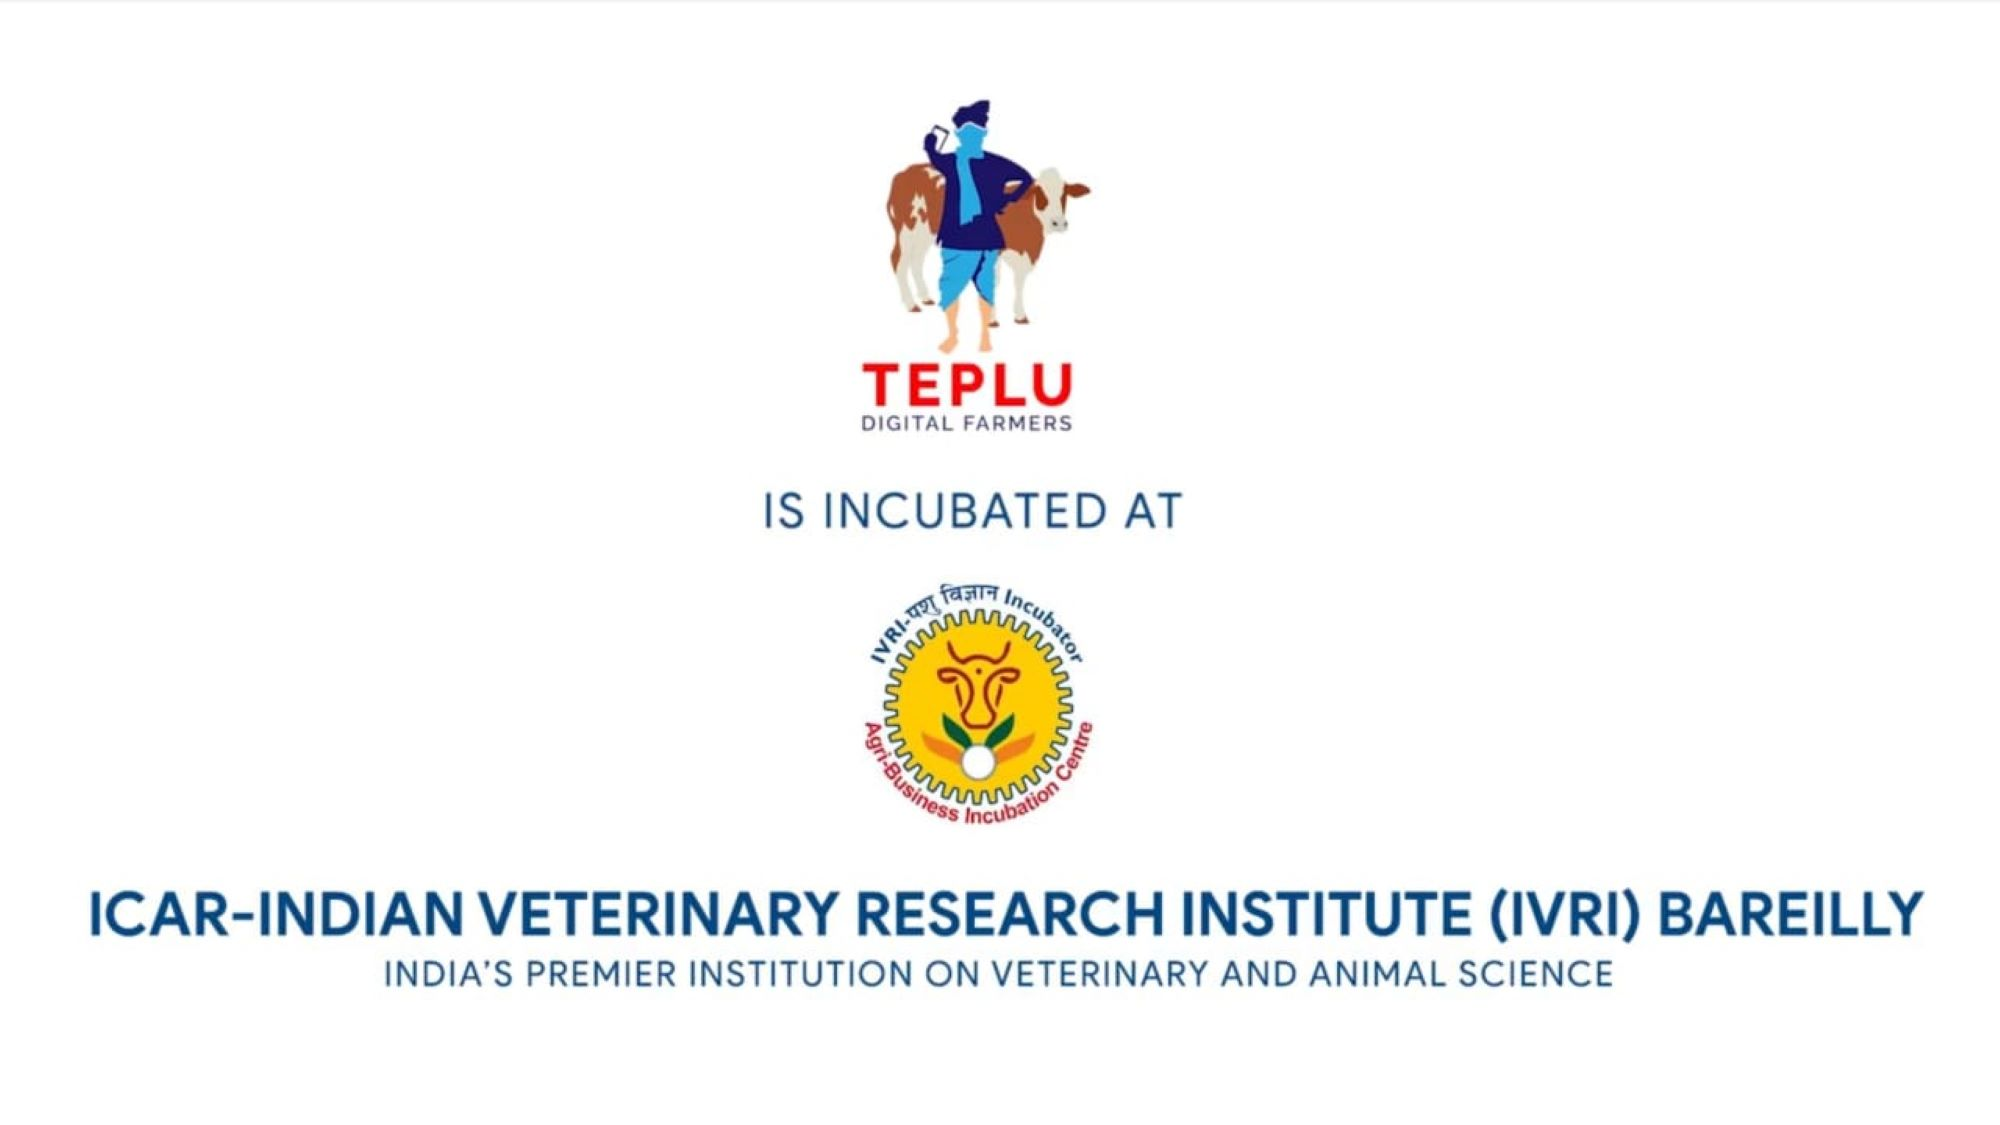 Learn about dairy farming from experts at Teplu. Run you dairy farm successfully